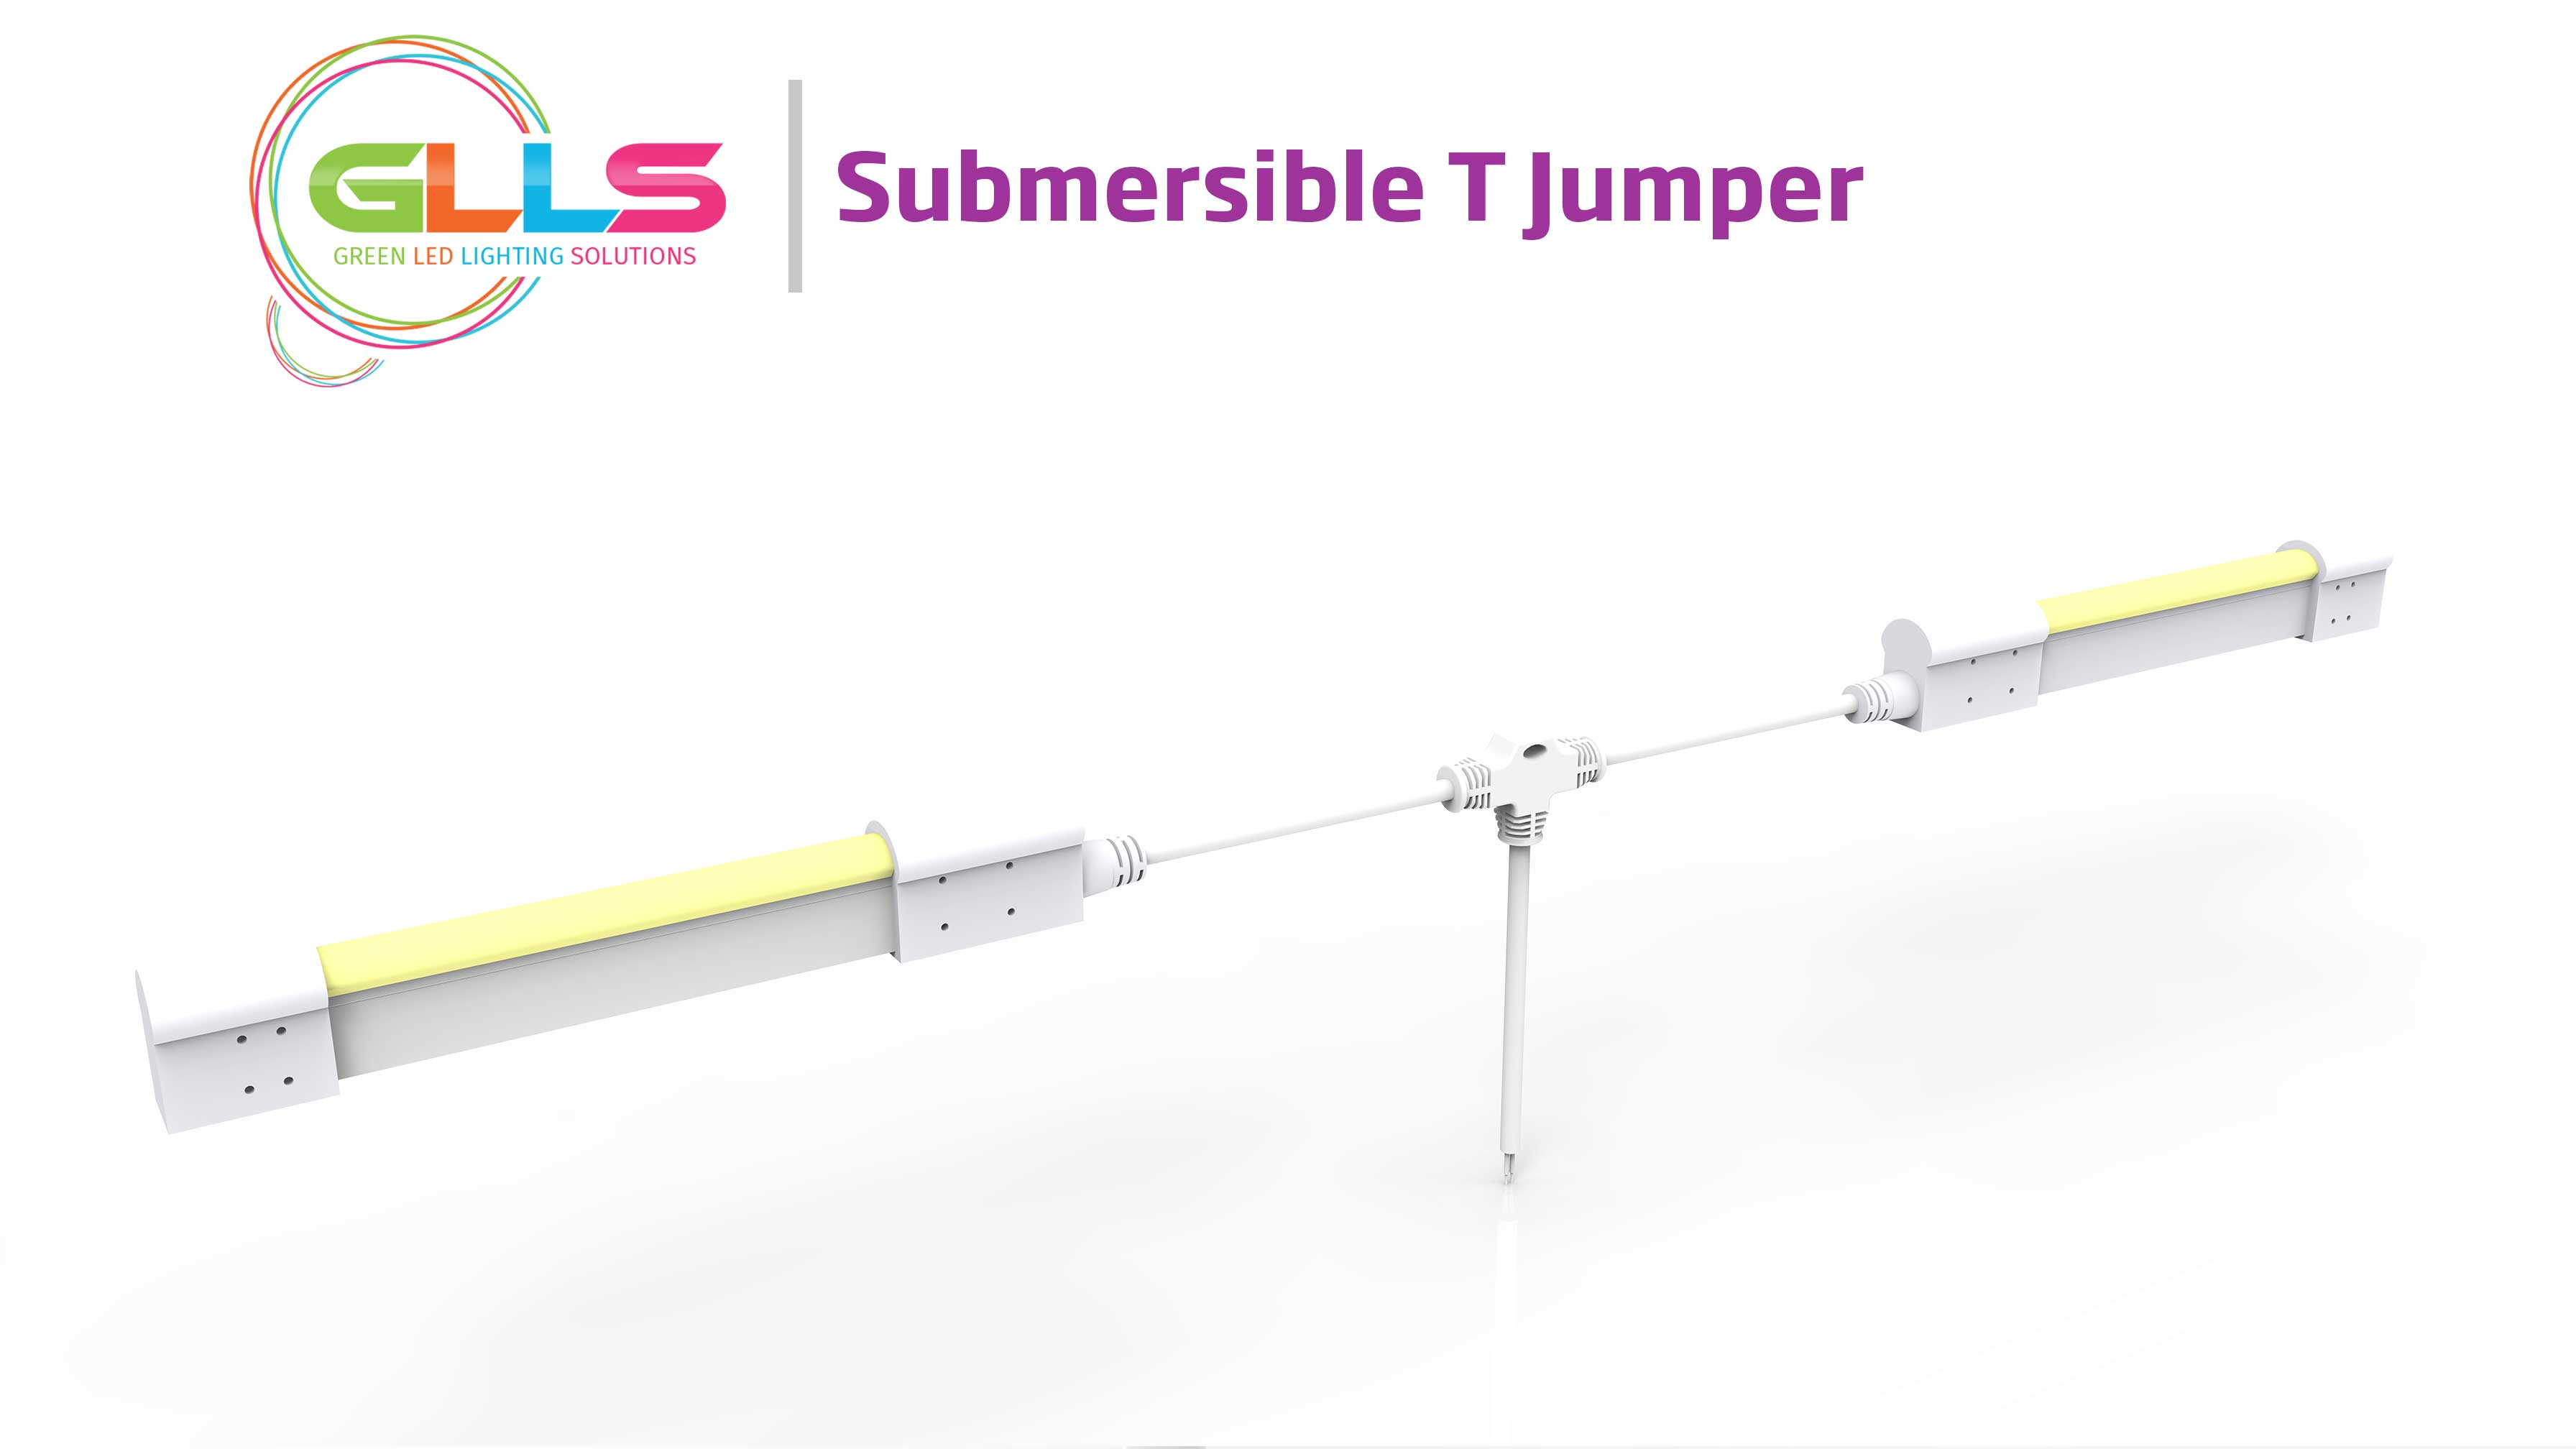 Vivid-S270-Submersible-T-Jumper